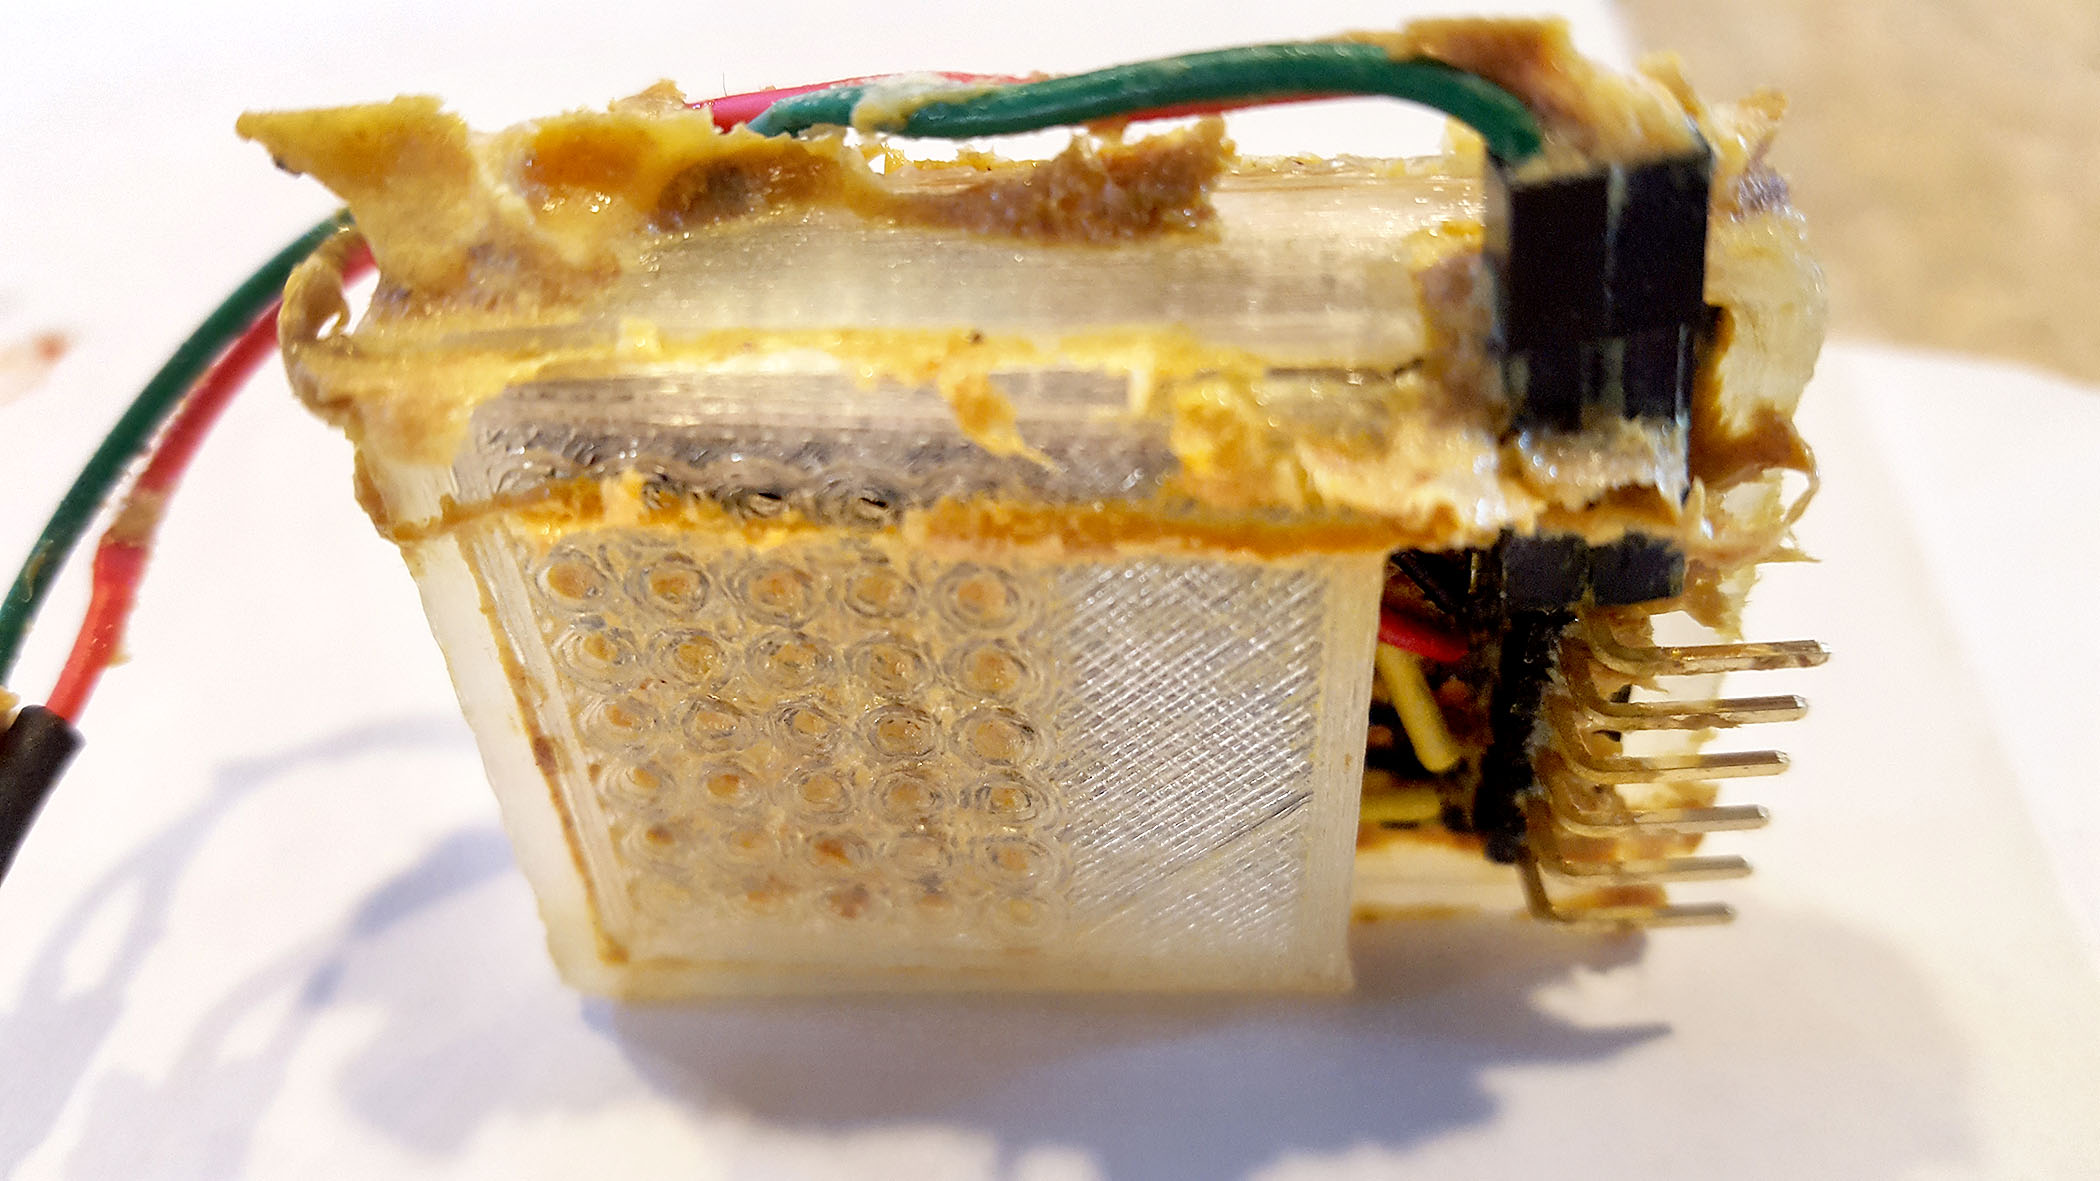 Propolis covers much of the sensor, as seen in these photos provided by Schmitz.